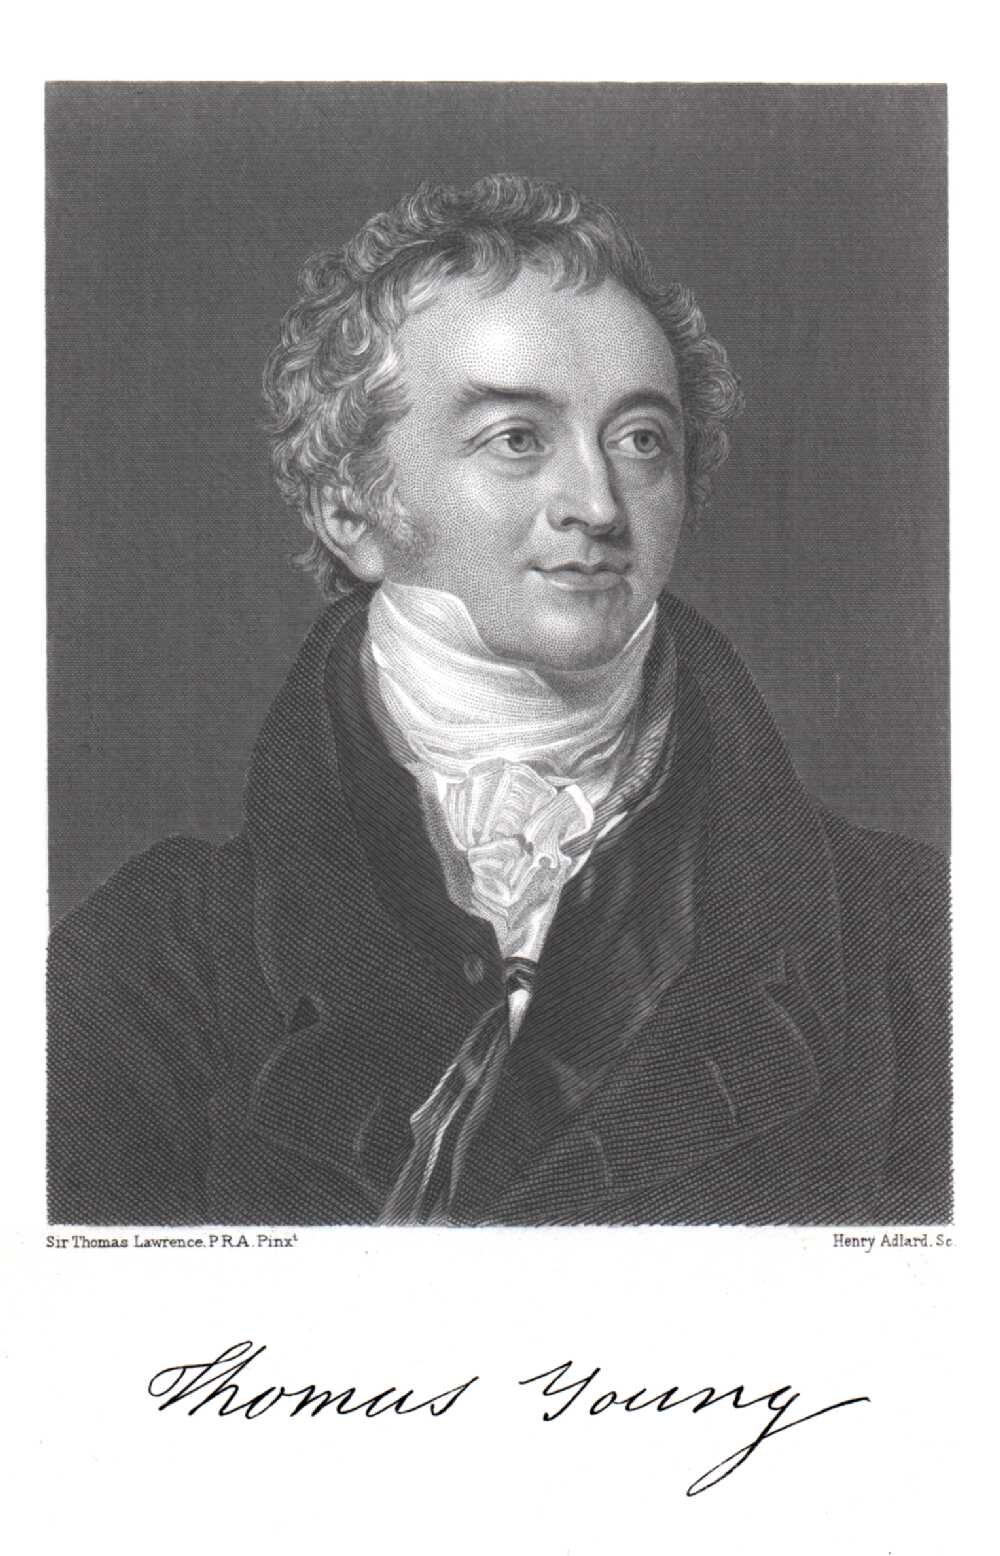 thomas young physiker wikipedia. Black Bedroom Furniture Sets. Home Design Ideas